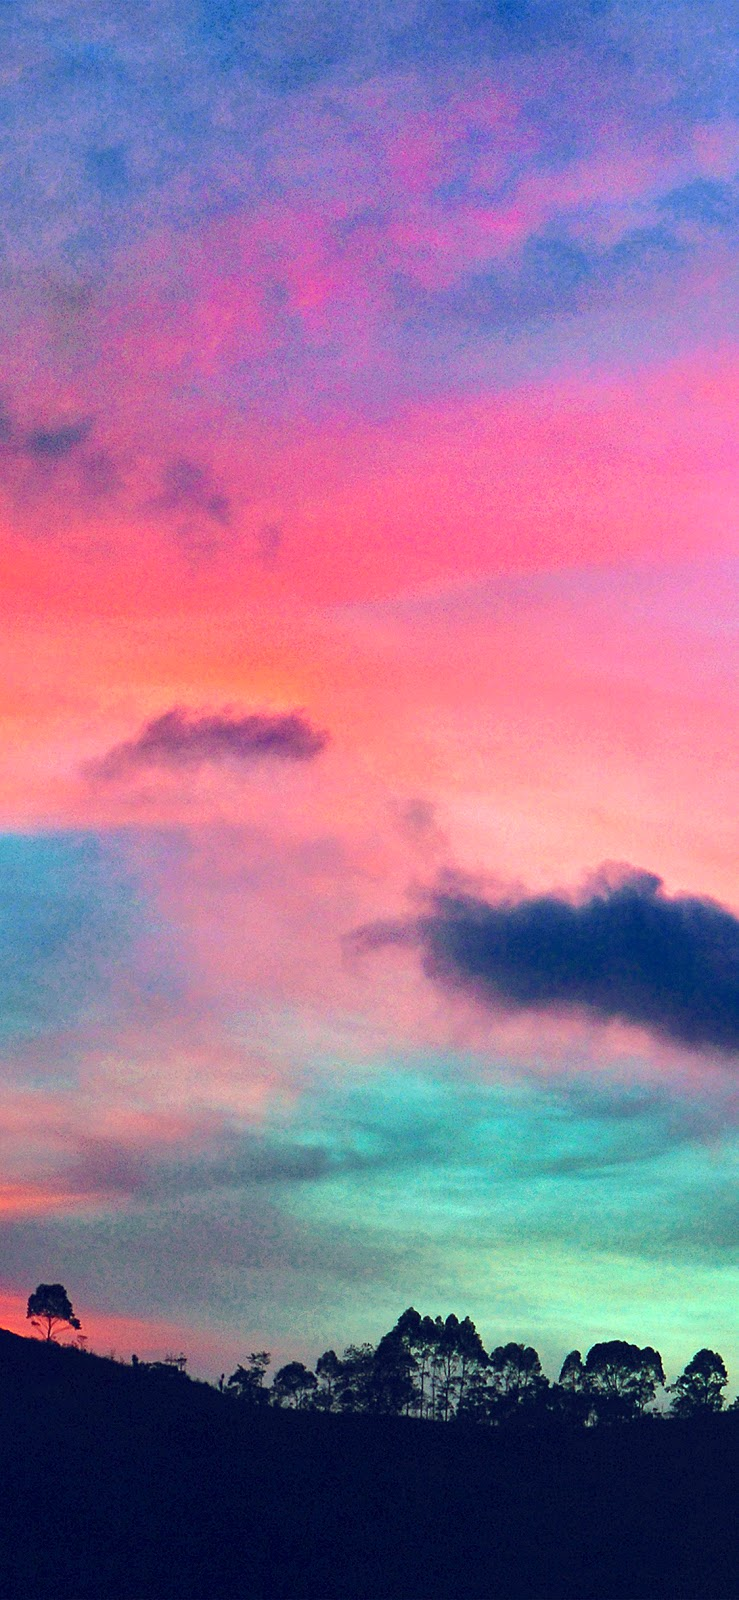 papers.co ng96 sky rainbow cloud sunset nature blue pink 41 iphone wallpaper